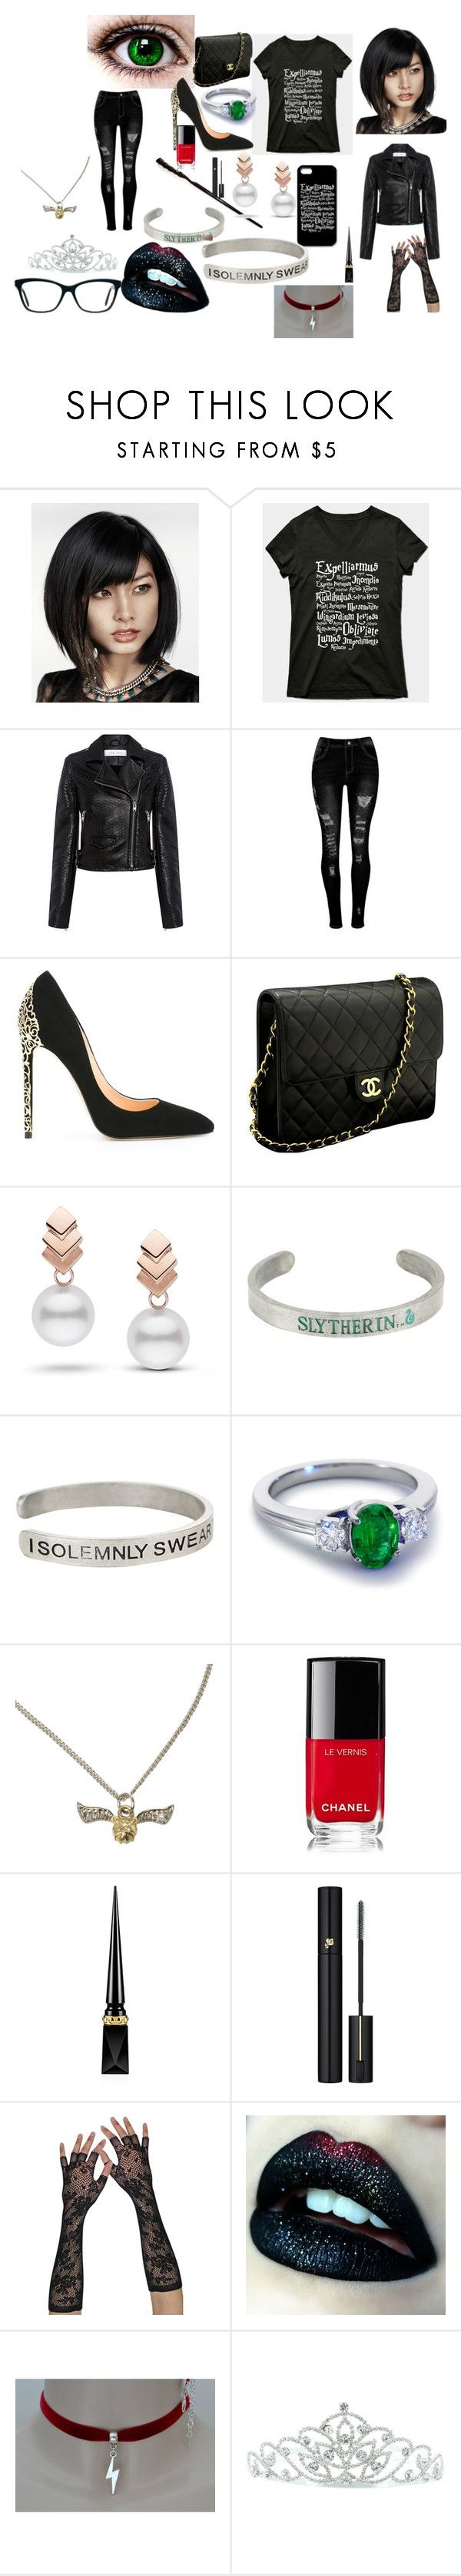 """Ella Potter"" by luna-cxxi on Polyvore featuring IRO, Cerasella Milano, Chanel, Escalier, Warner Bros., Blue Nile, Christian Louboutin, Lancôme and Kate Marie"